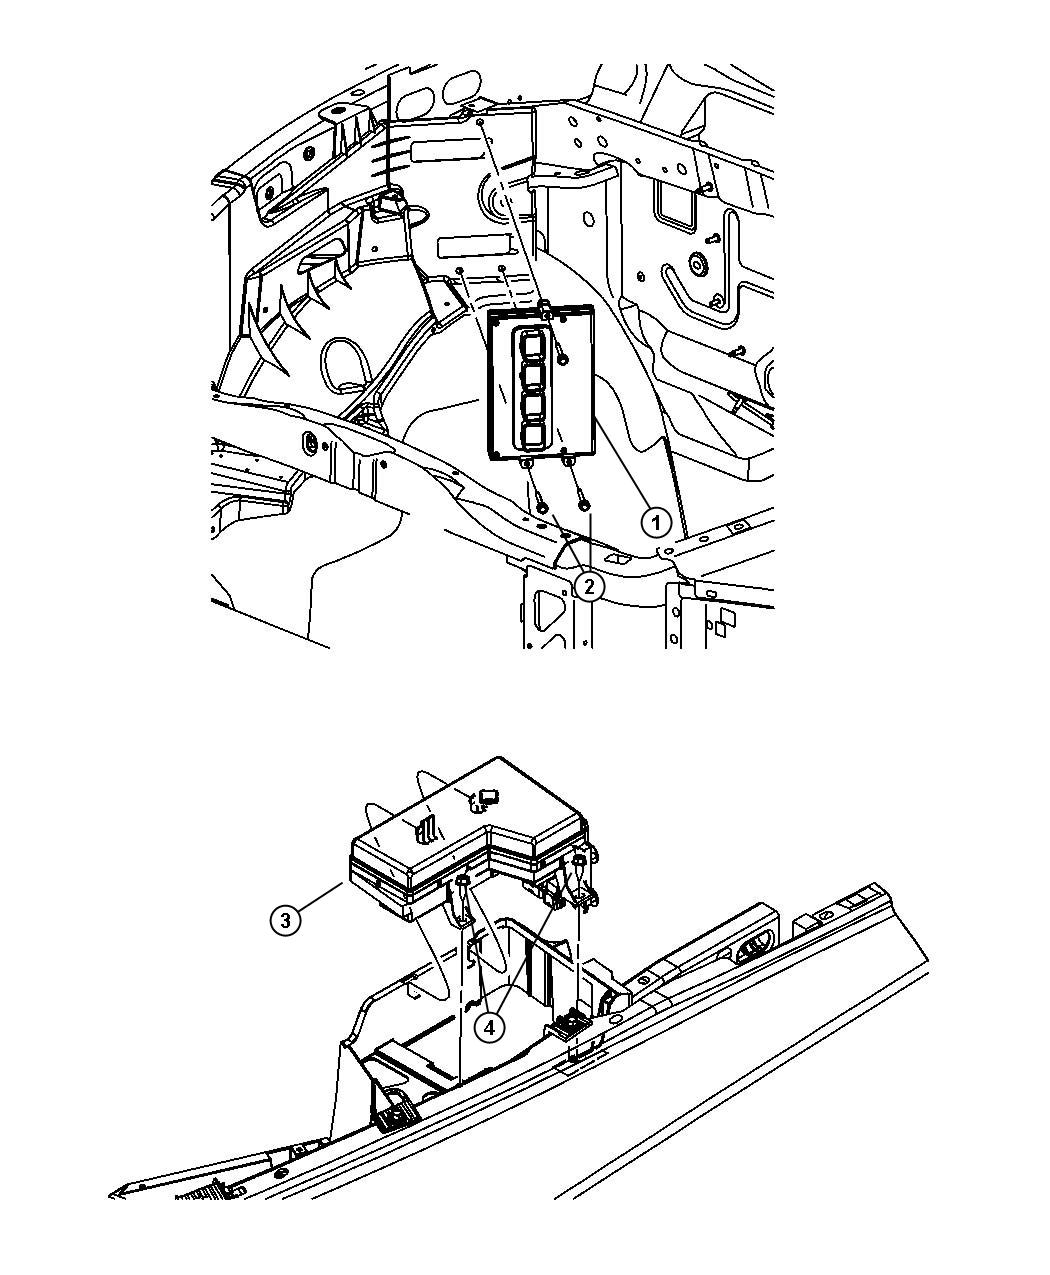 [DIAGRAM] 2005 Jeep Liberty Engine Bay Diagram FULL